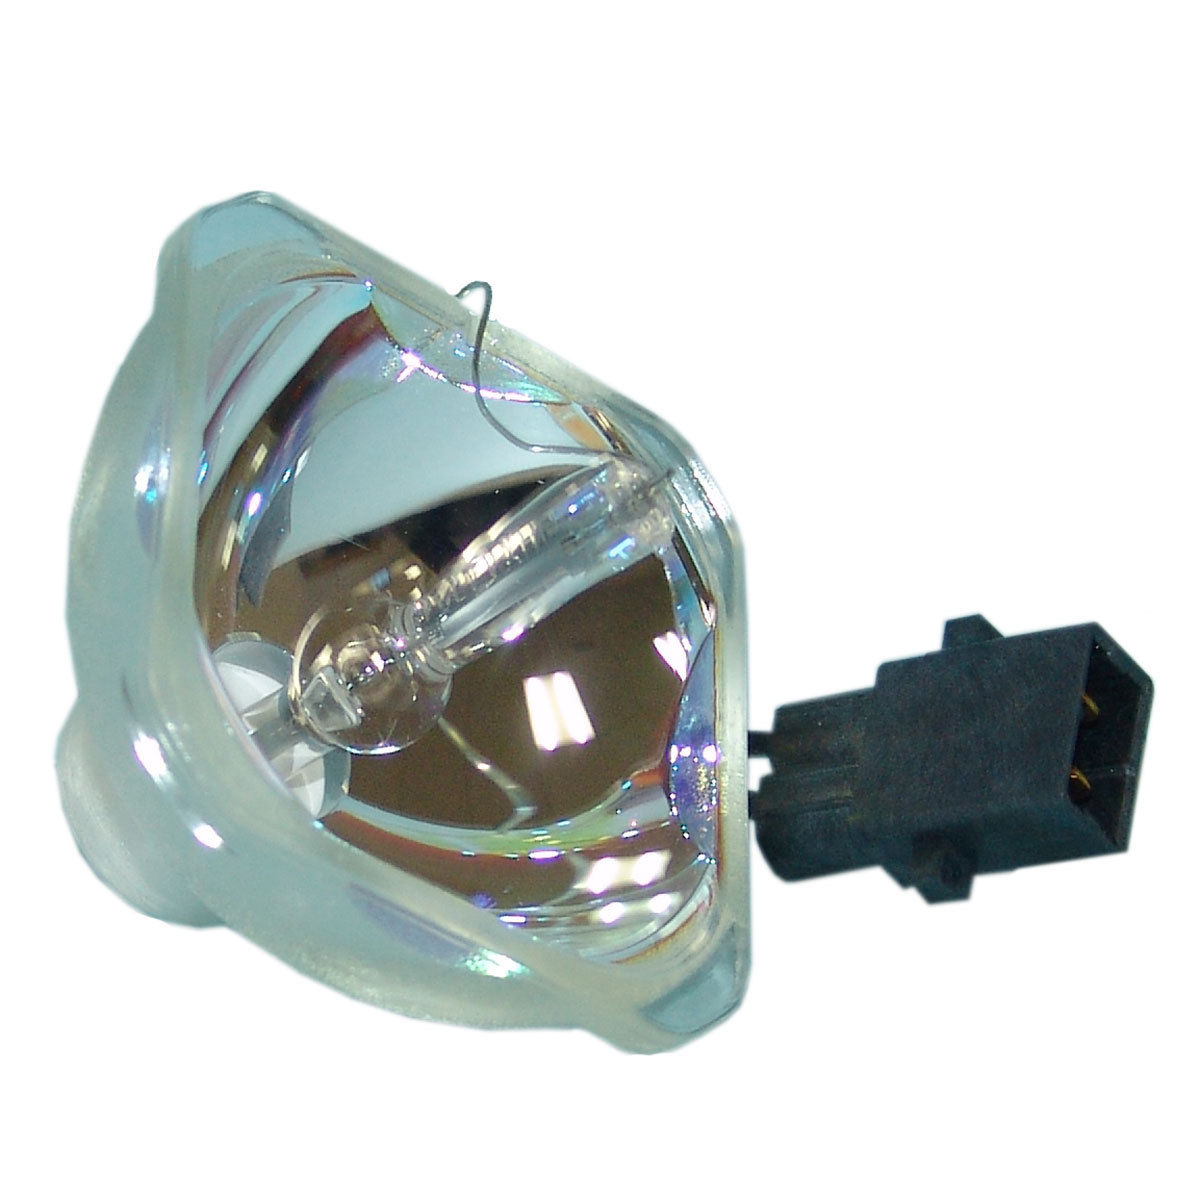 Compatible Bare Bulb ELPLP88 V13H010L88 for Epson PowerLite S27 X27 W29 97H 98H 99WH 955WH 965H VS240 EB-S31 Projector Bulb Lamp replacement original projector elplp88 lamp for epson powerlite s27 x27 w29 97h 98h 99wh 955wh and 965h projectors